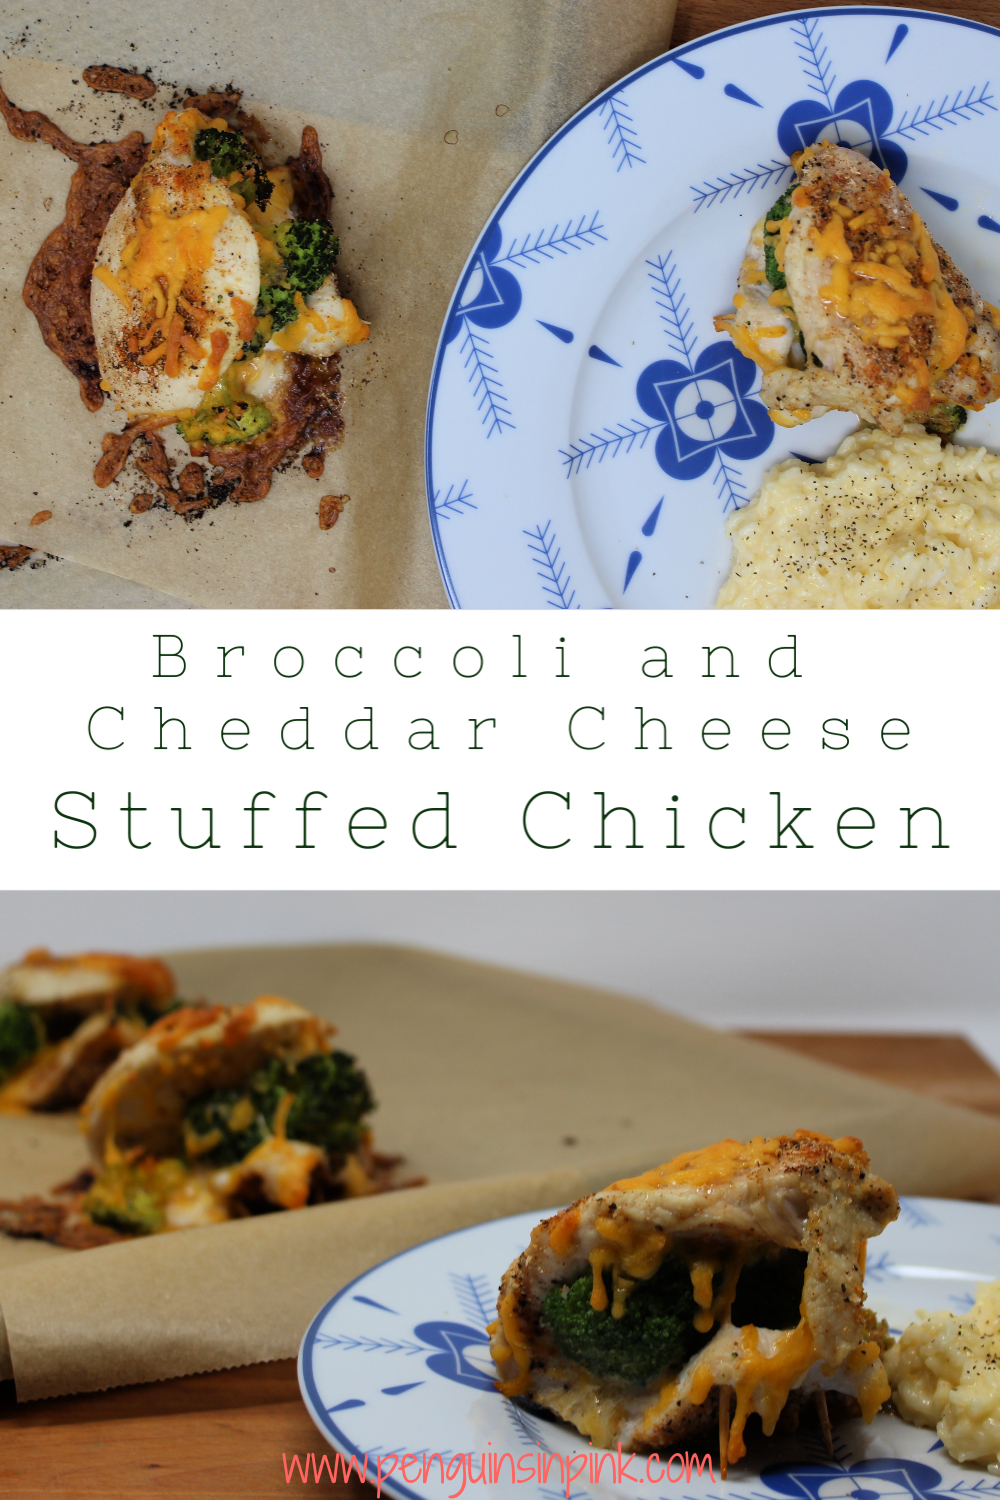 Broccoli and cheddar cheese stuffed chicken breasts are seasoned with a blend of paprika, garlic and onion powders and then filled with broccoli cheese.